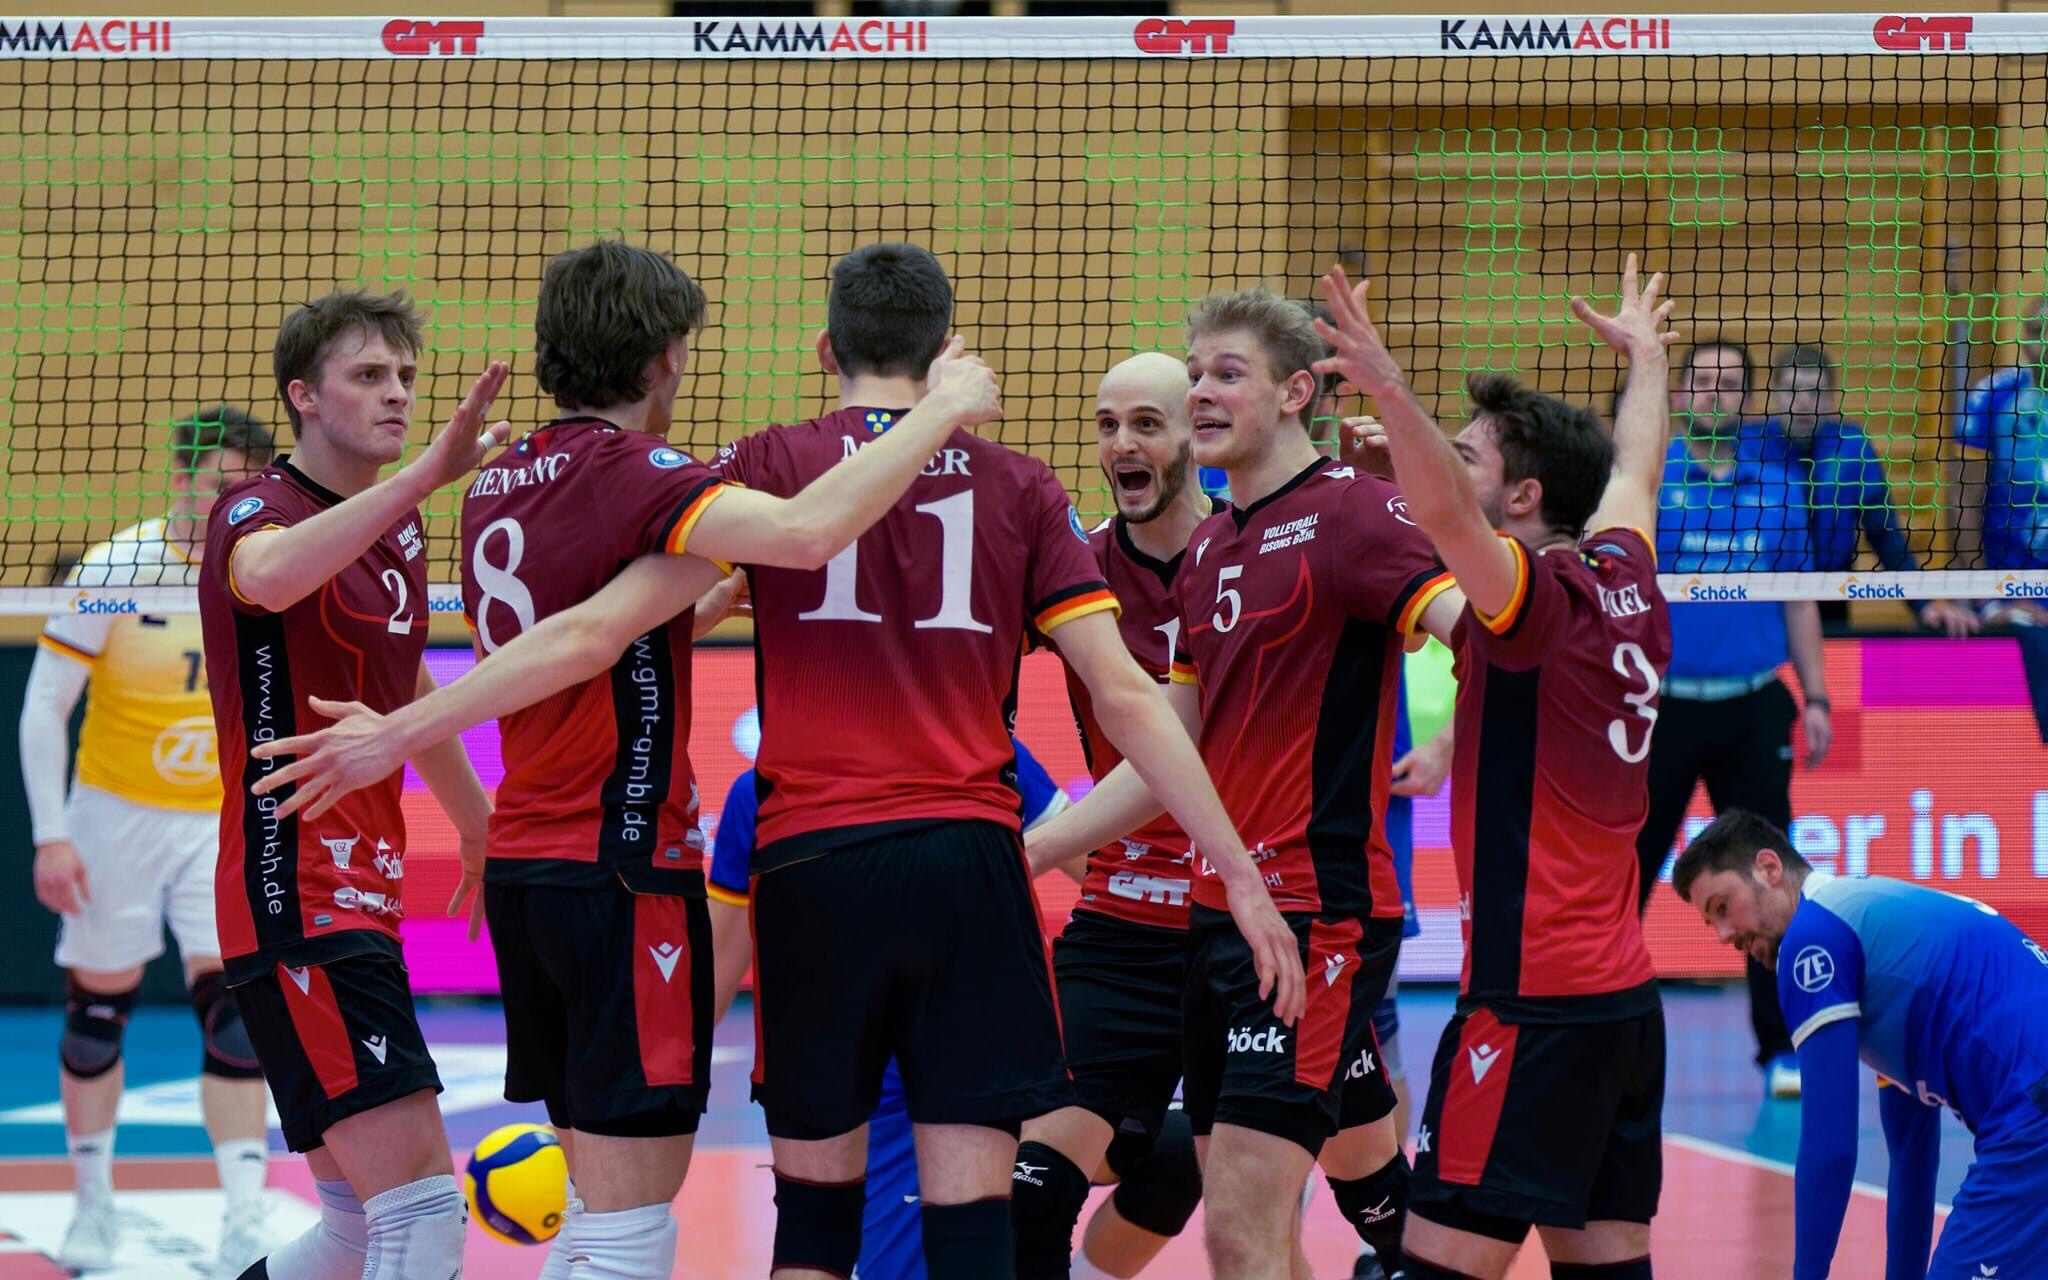 Germany: Volleyball Bisons Buhl withdrew from Bundesliga